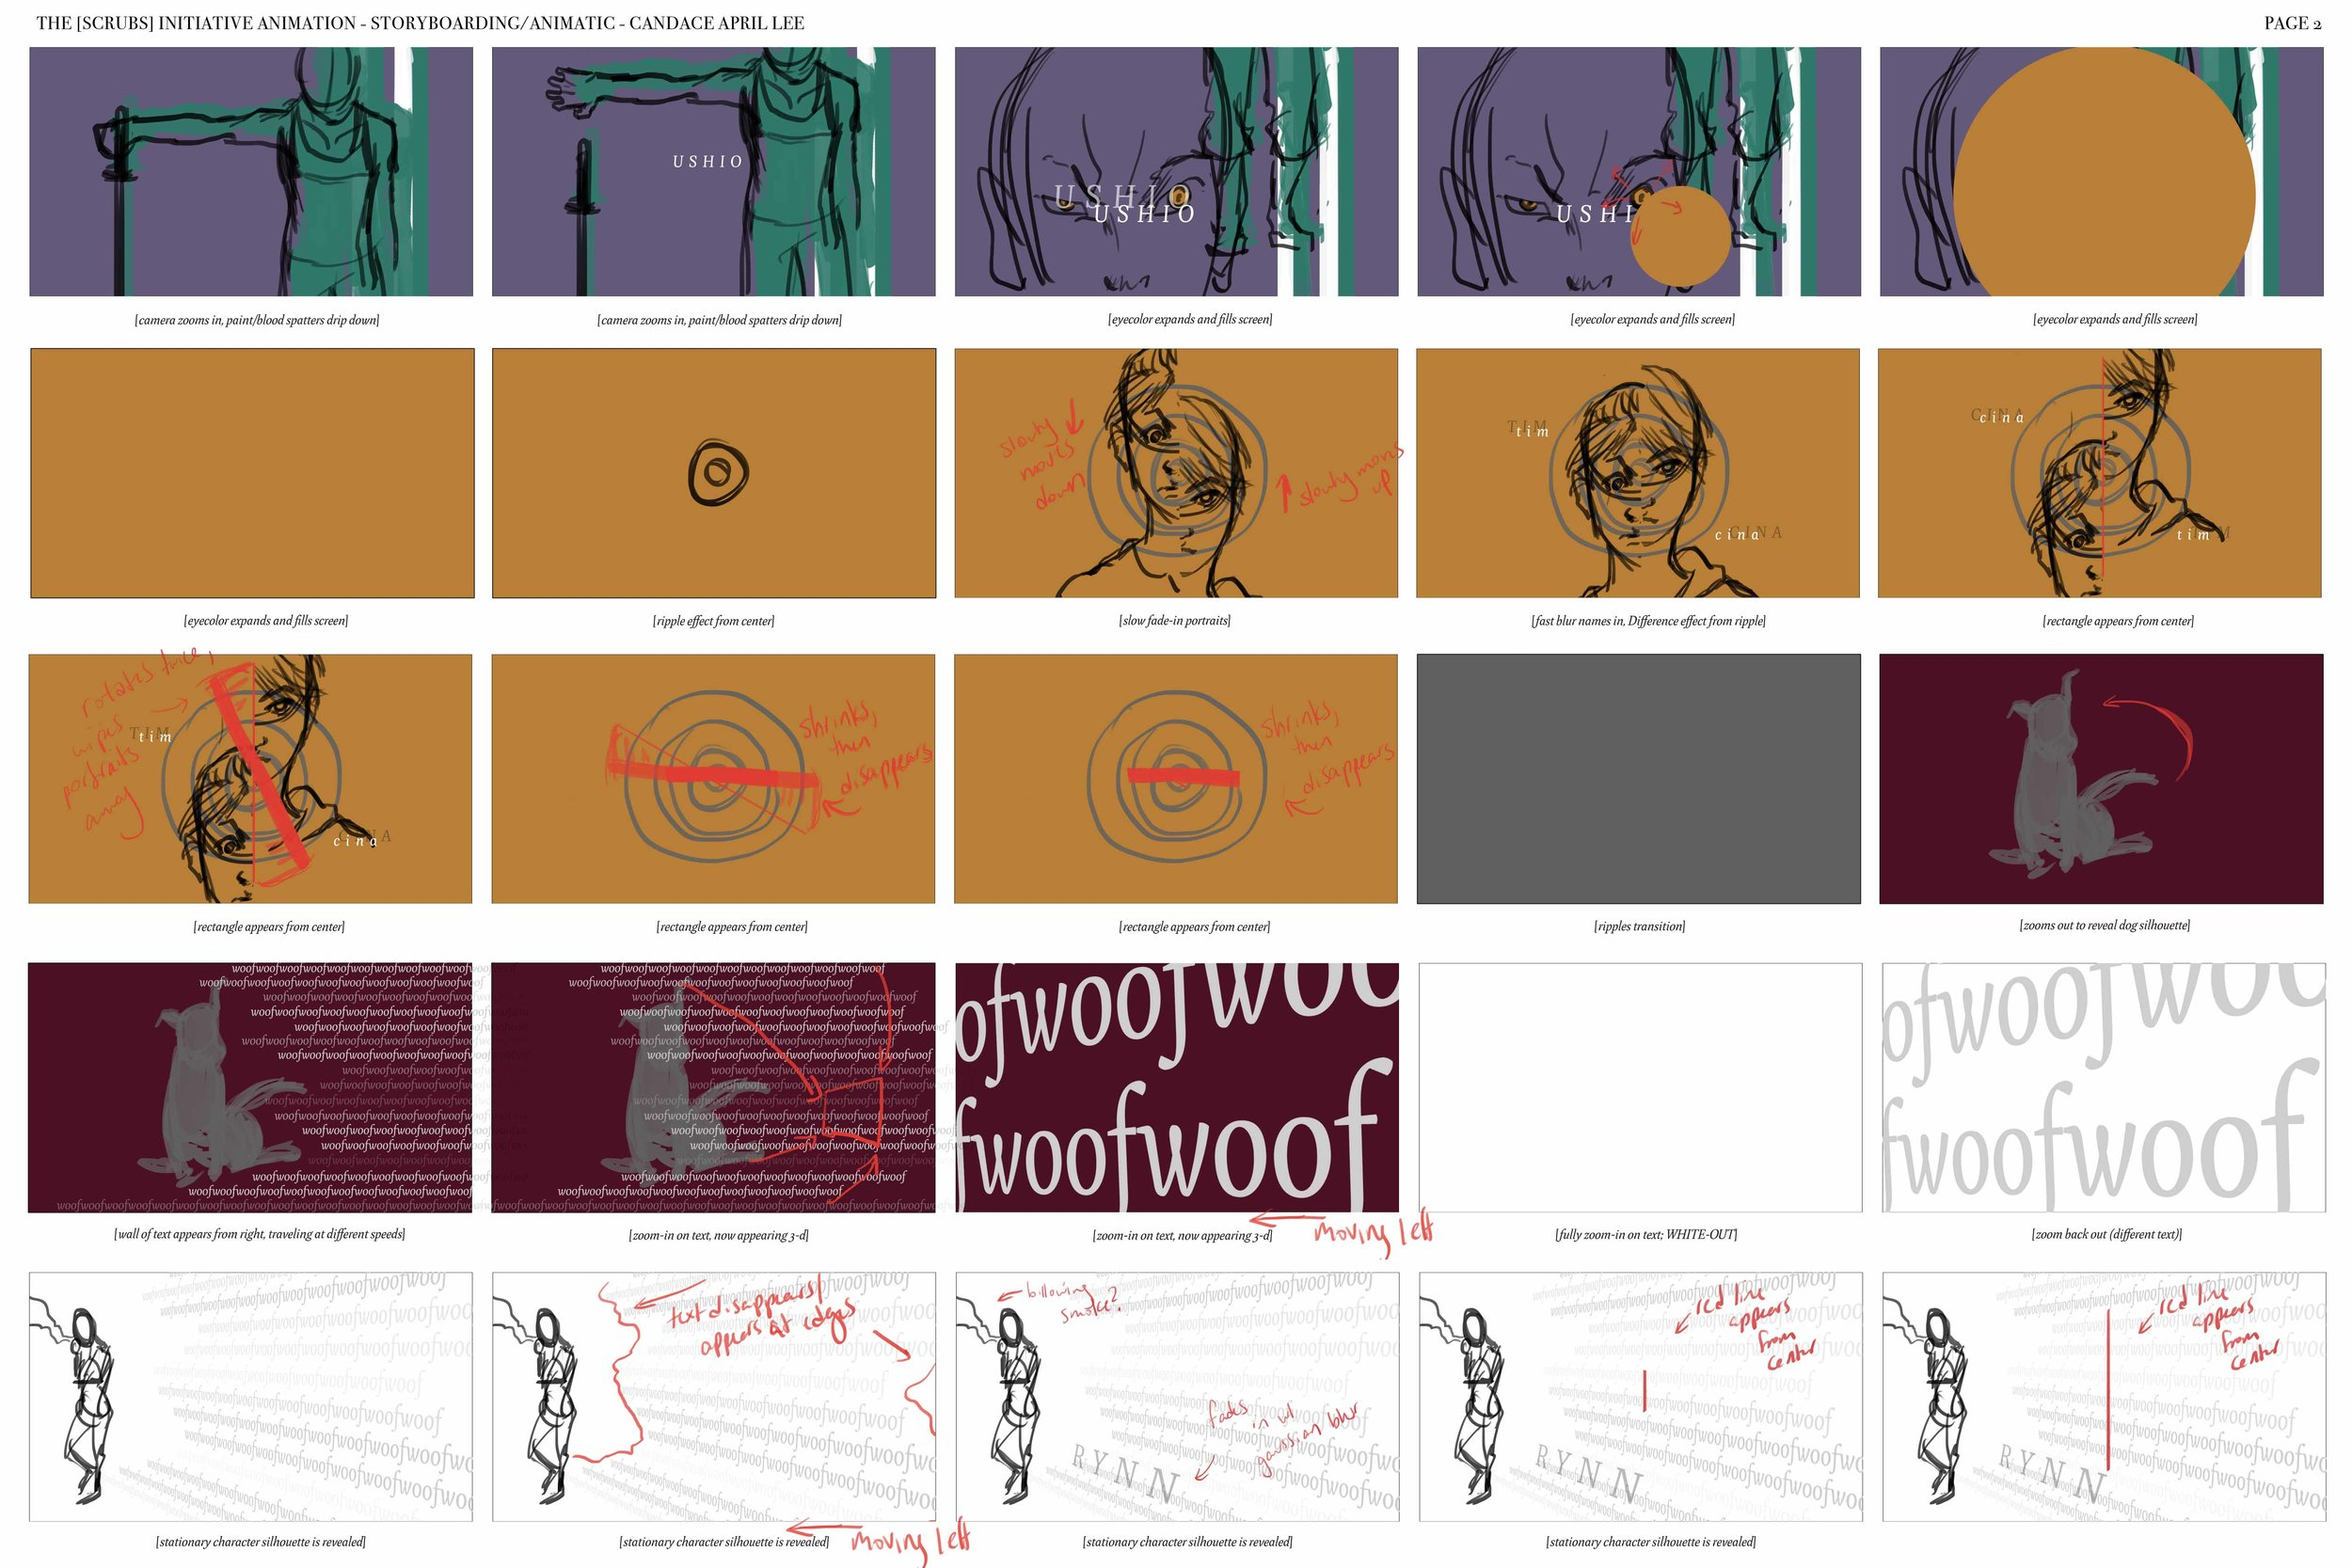 scrubs initiative animation storyboard 2.jpg